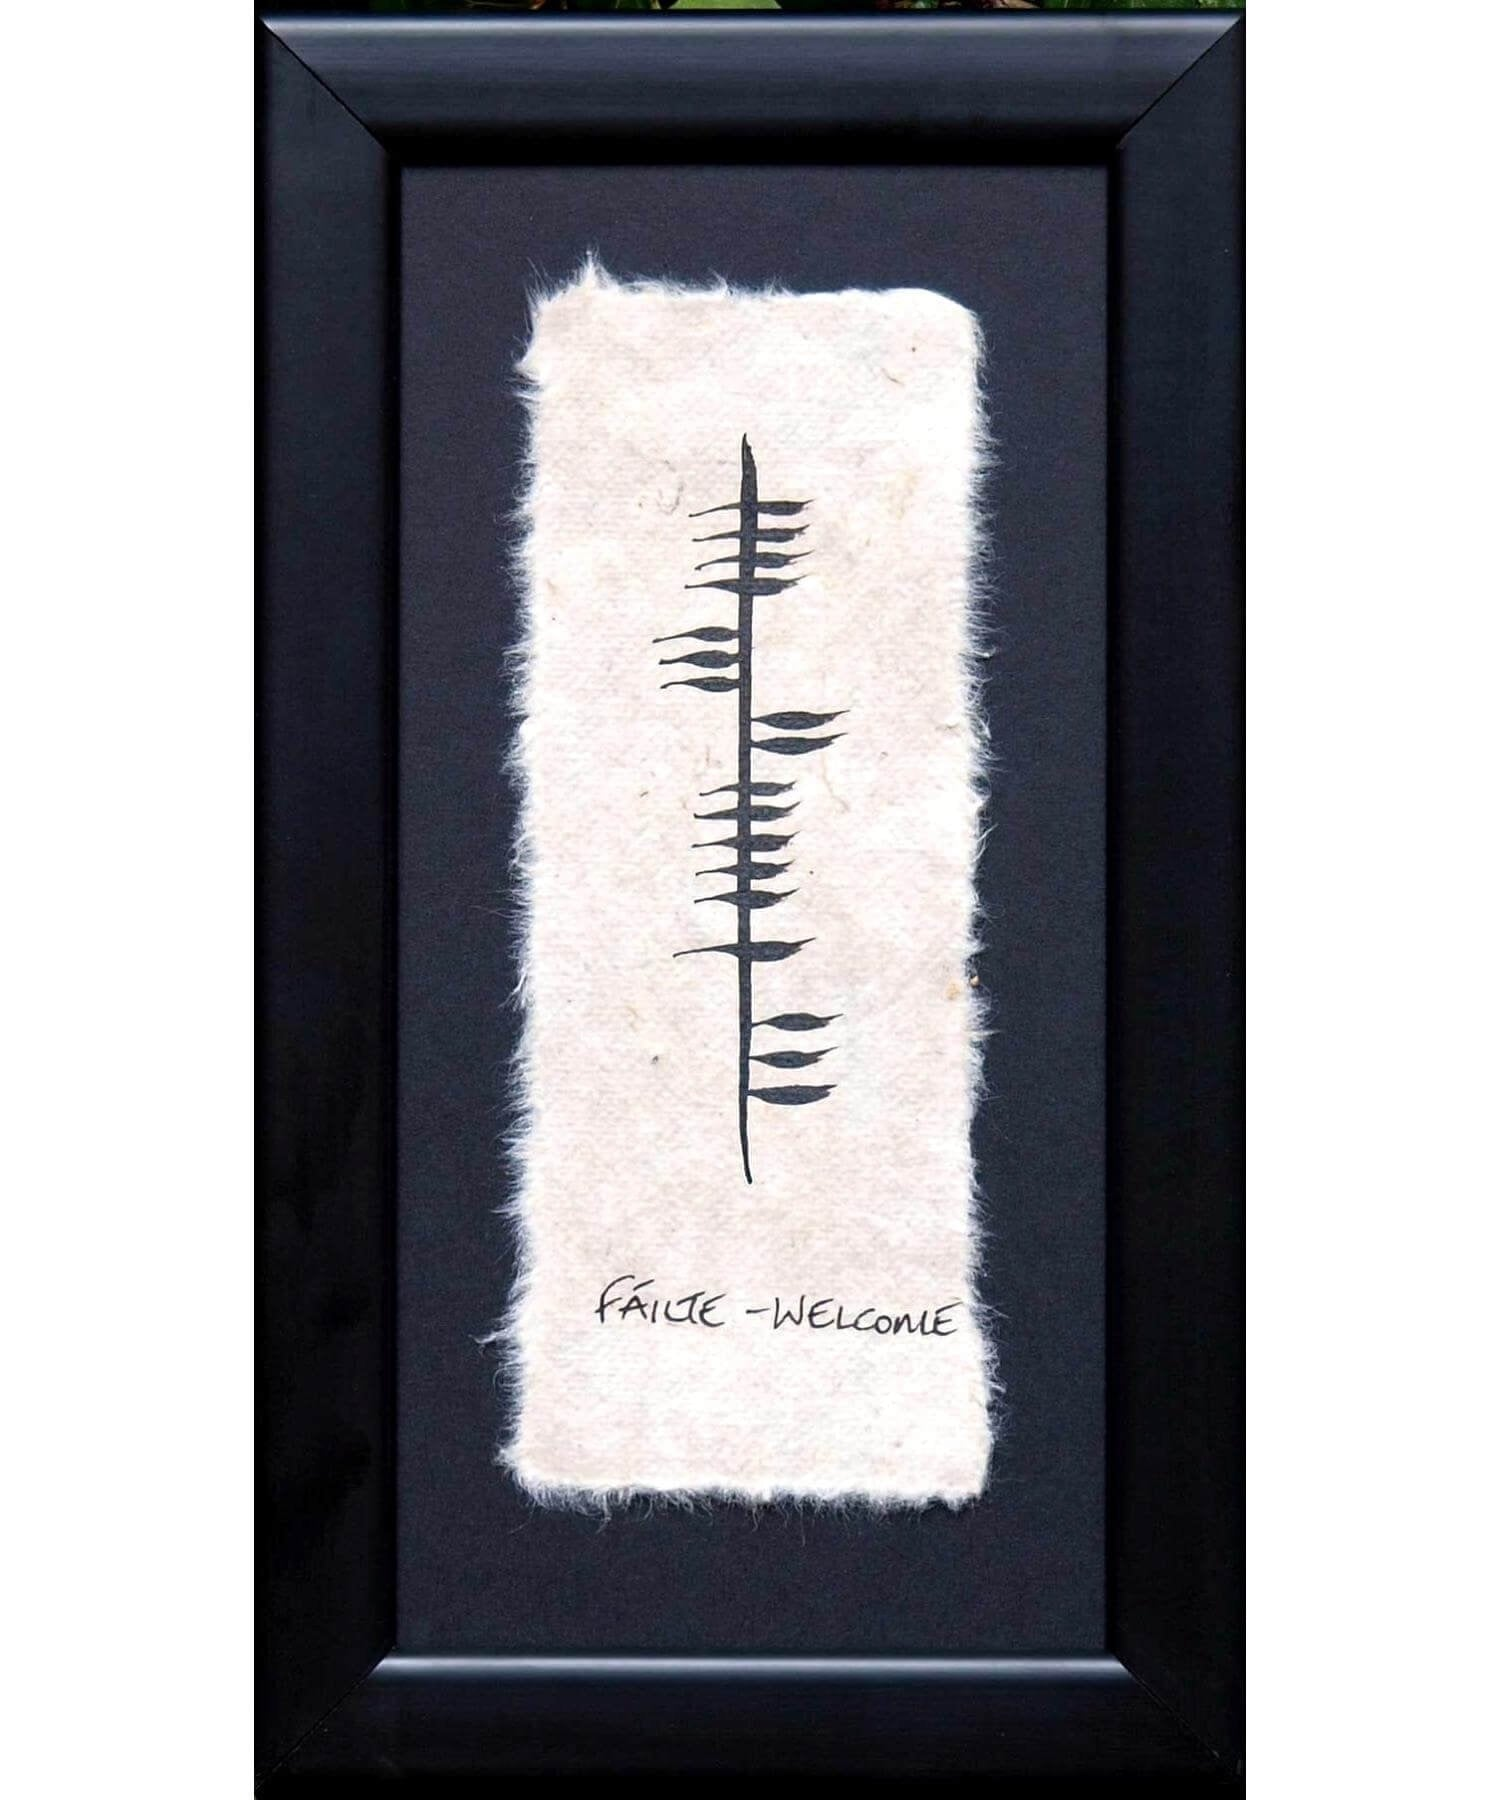 Ogham - Failte Wishes Wall Art Prints & Photography